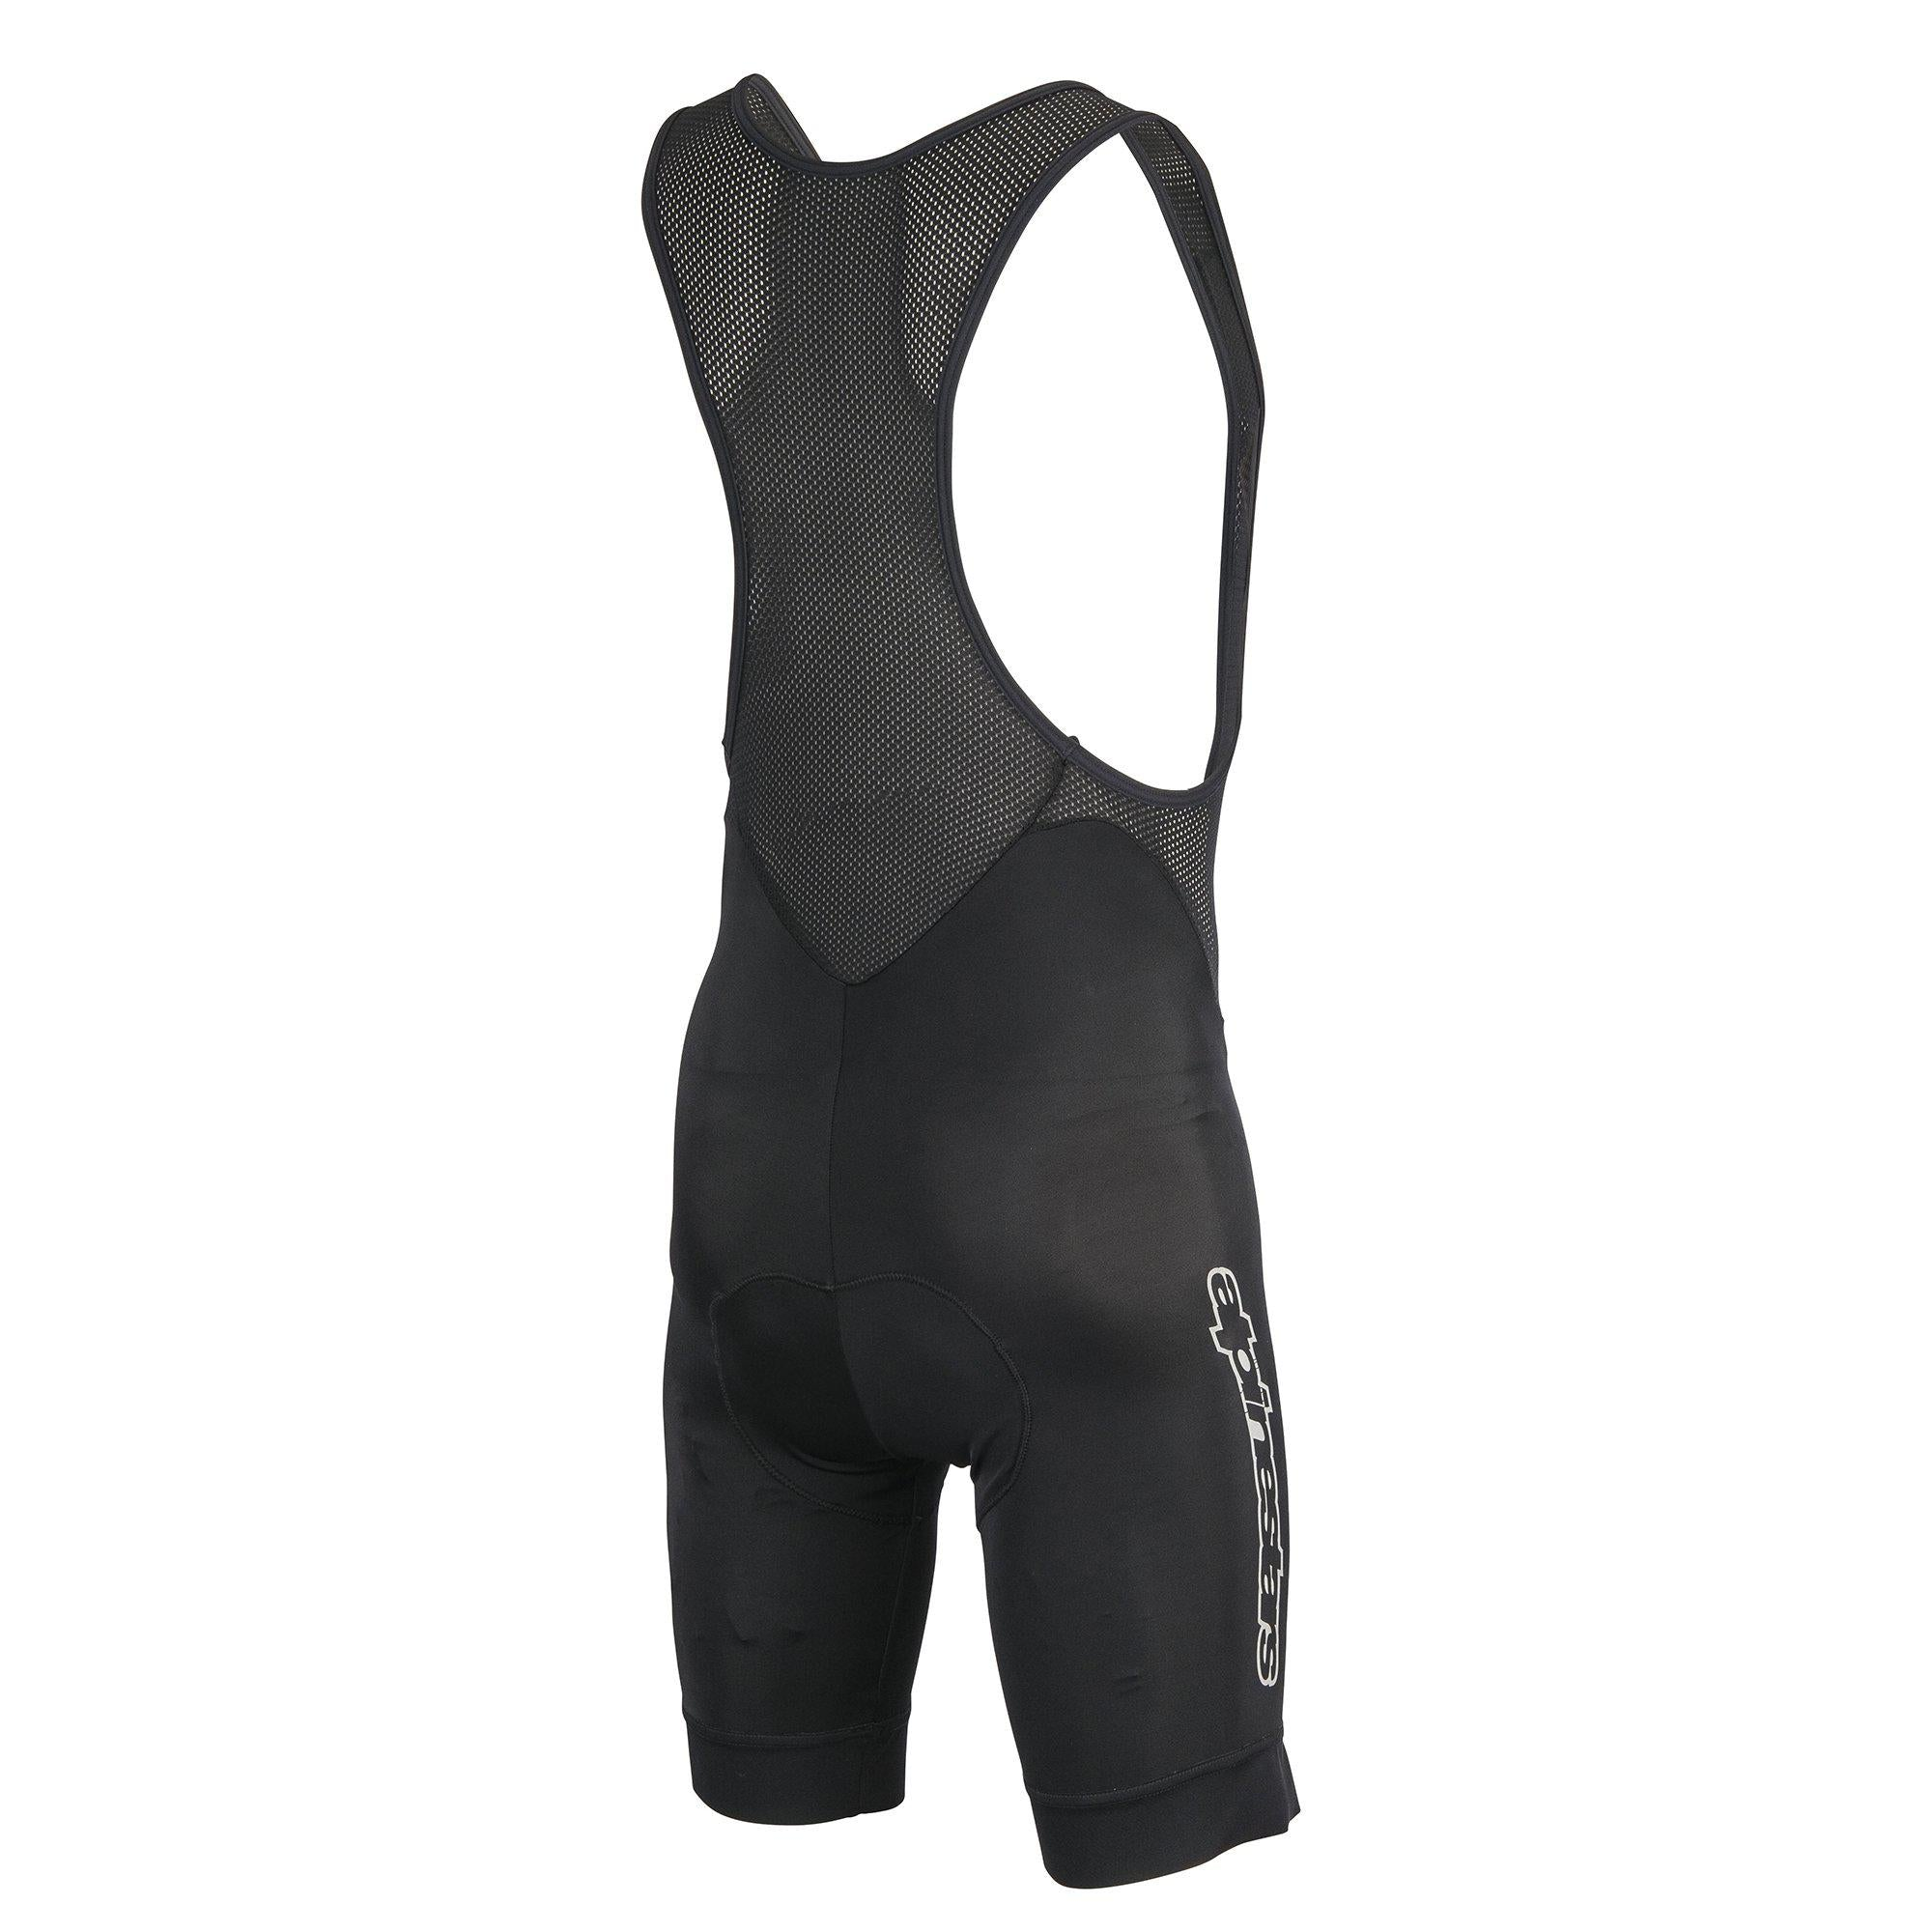 Vetta Plus Bib Shorts